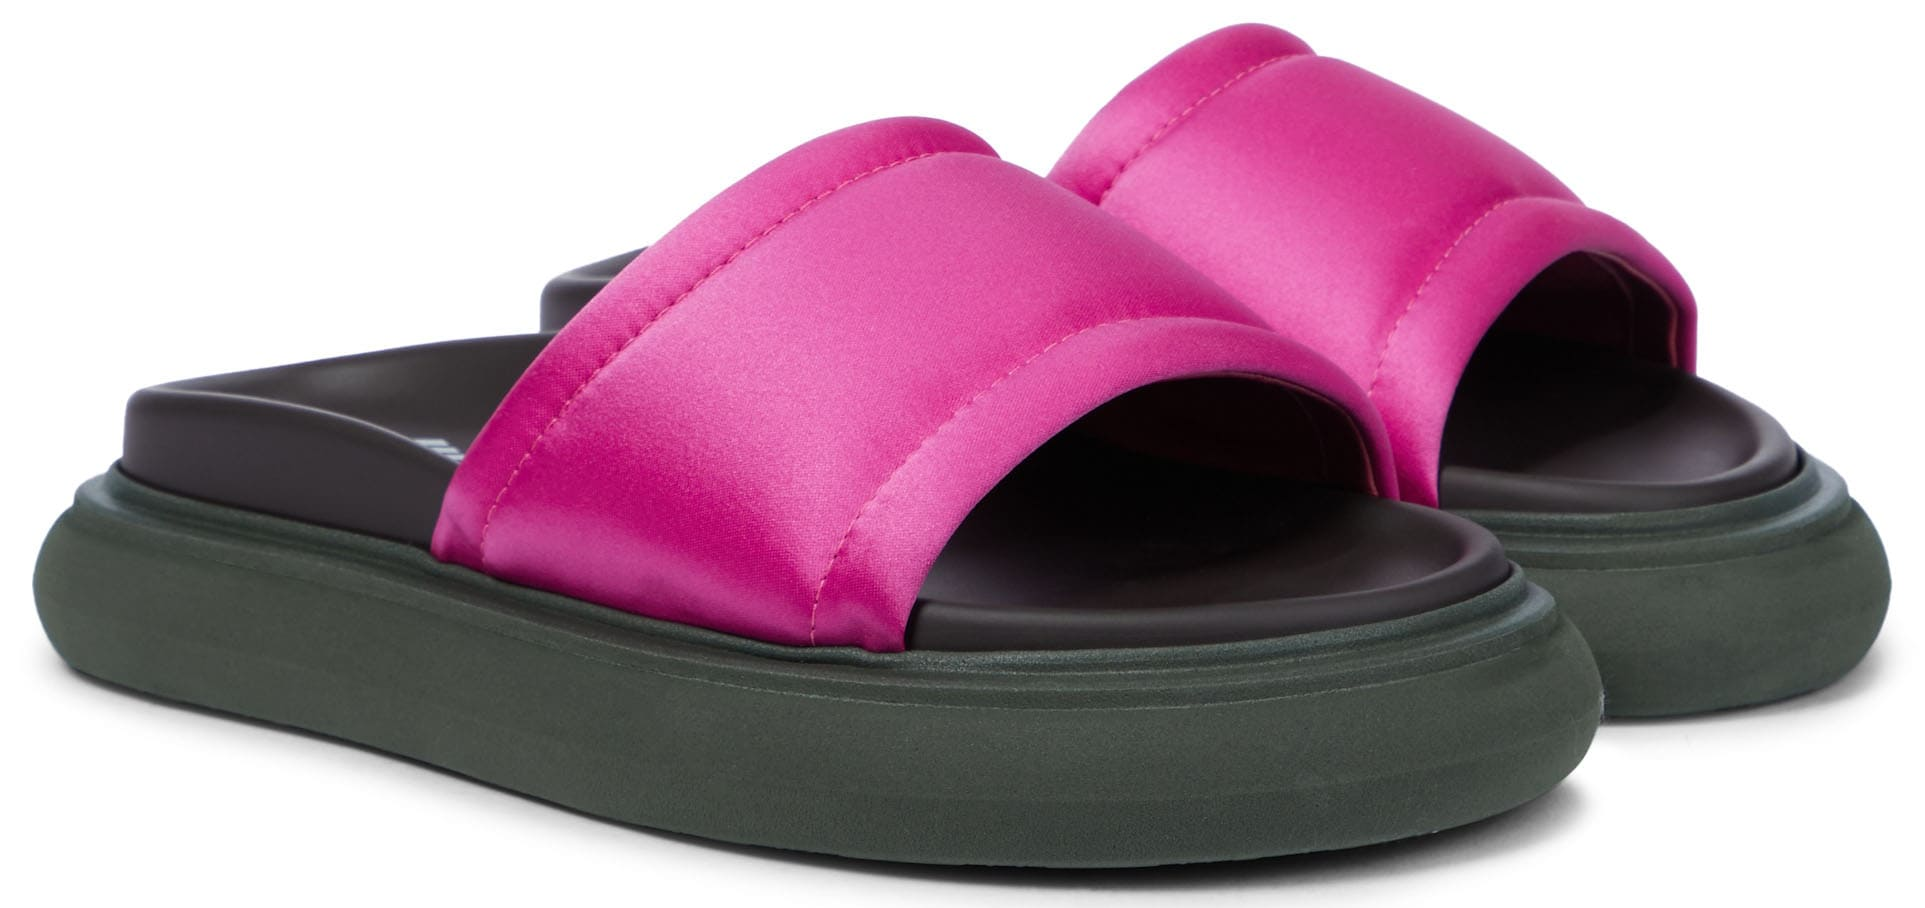 The Attico Noah slides have chunky, flat rubber soles and wide satin uppers